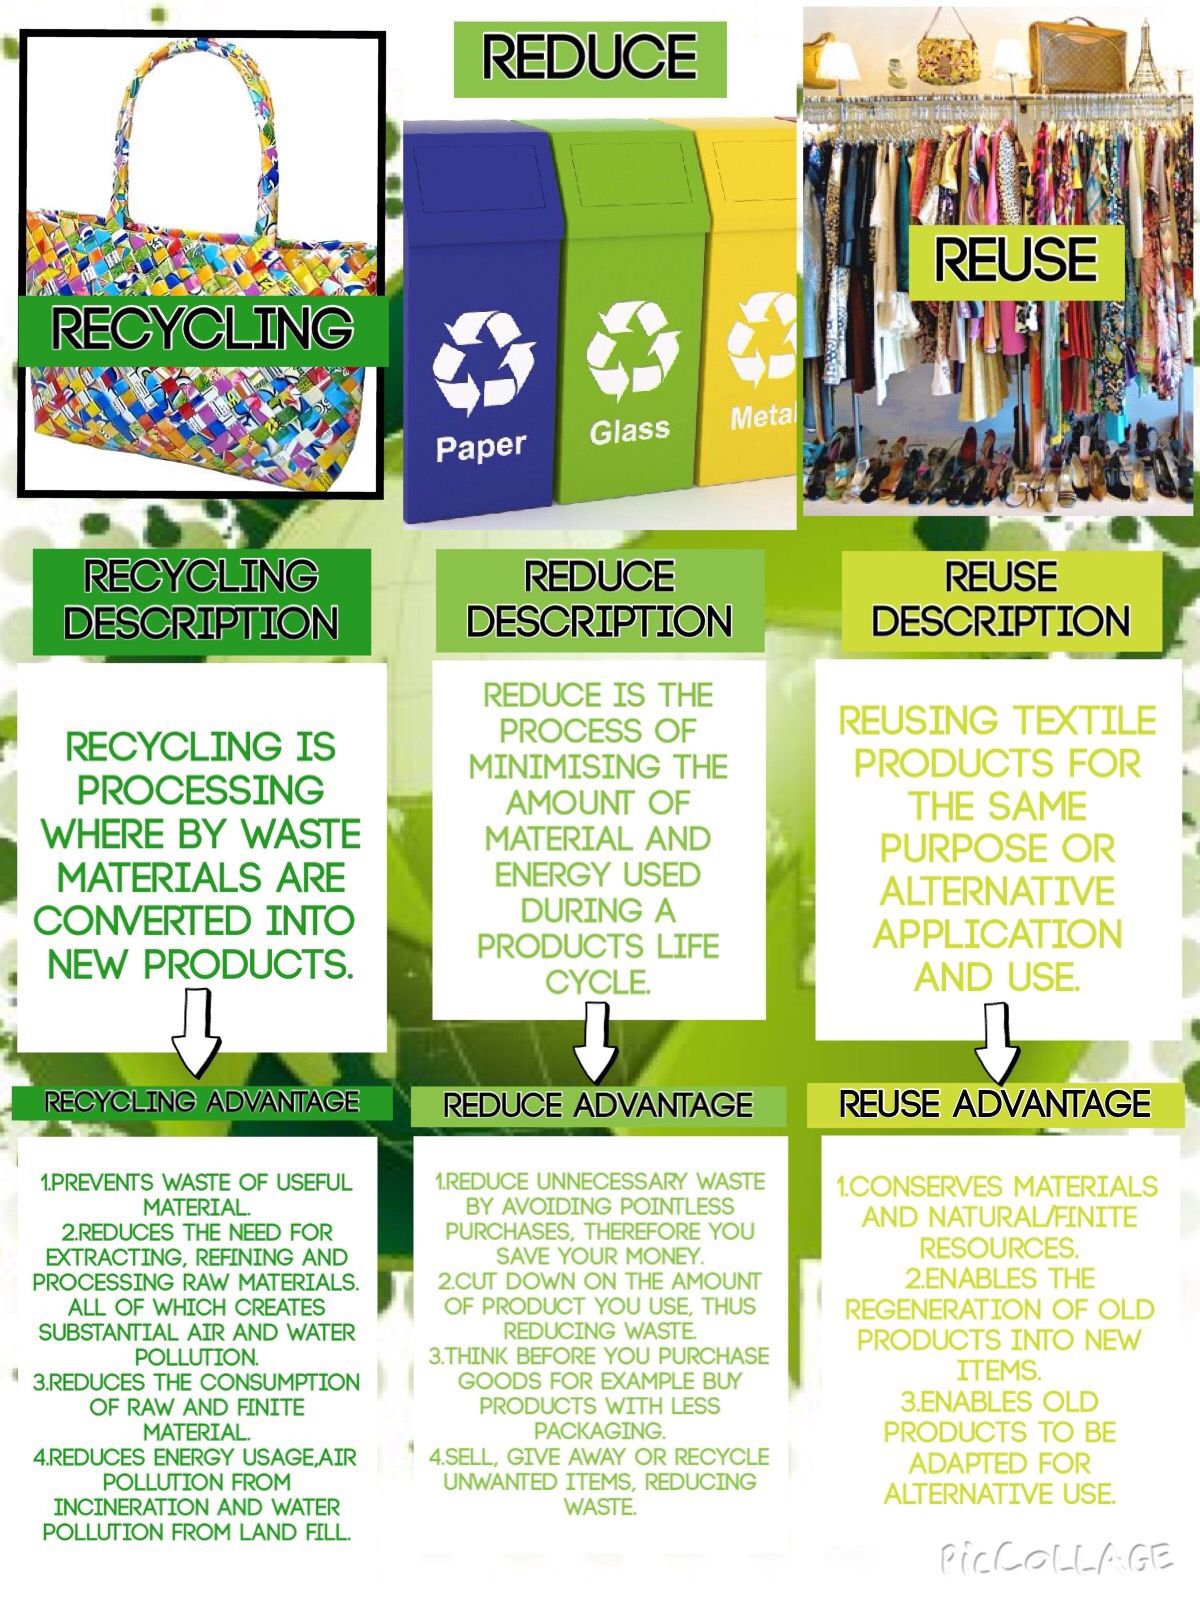 3 R S Recycle Reduce Amp Reuse Textile Recycling Recycling Reduce Reuse Recycle Poster